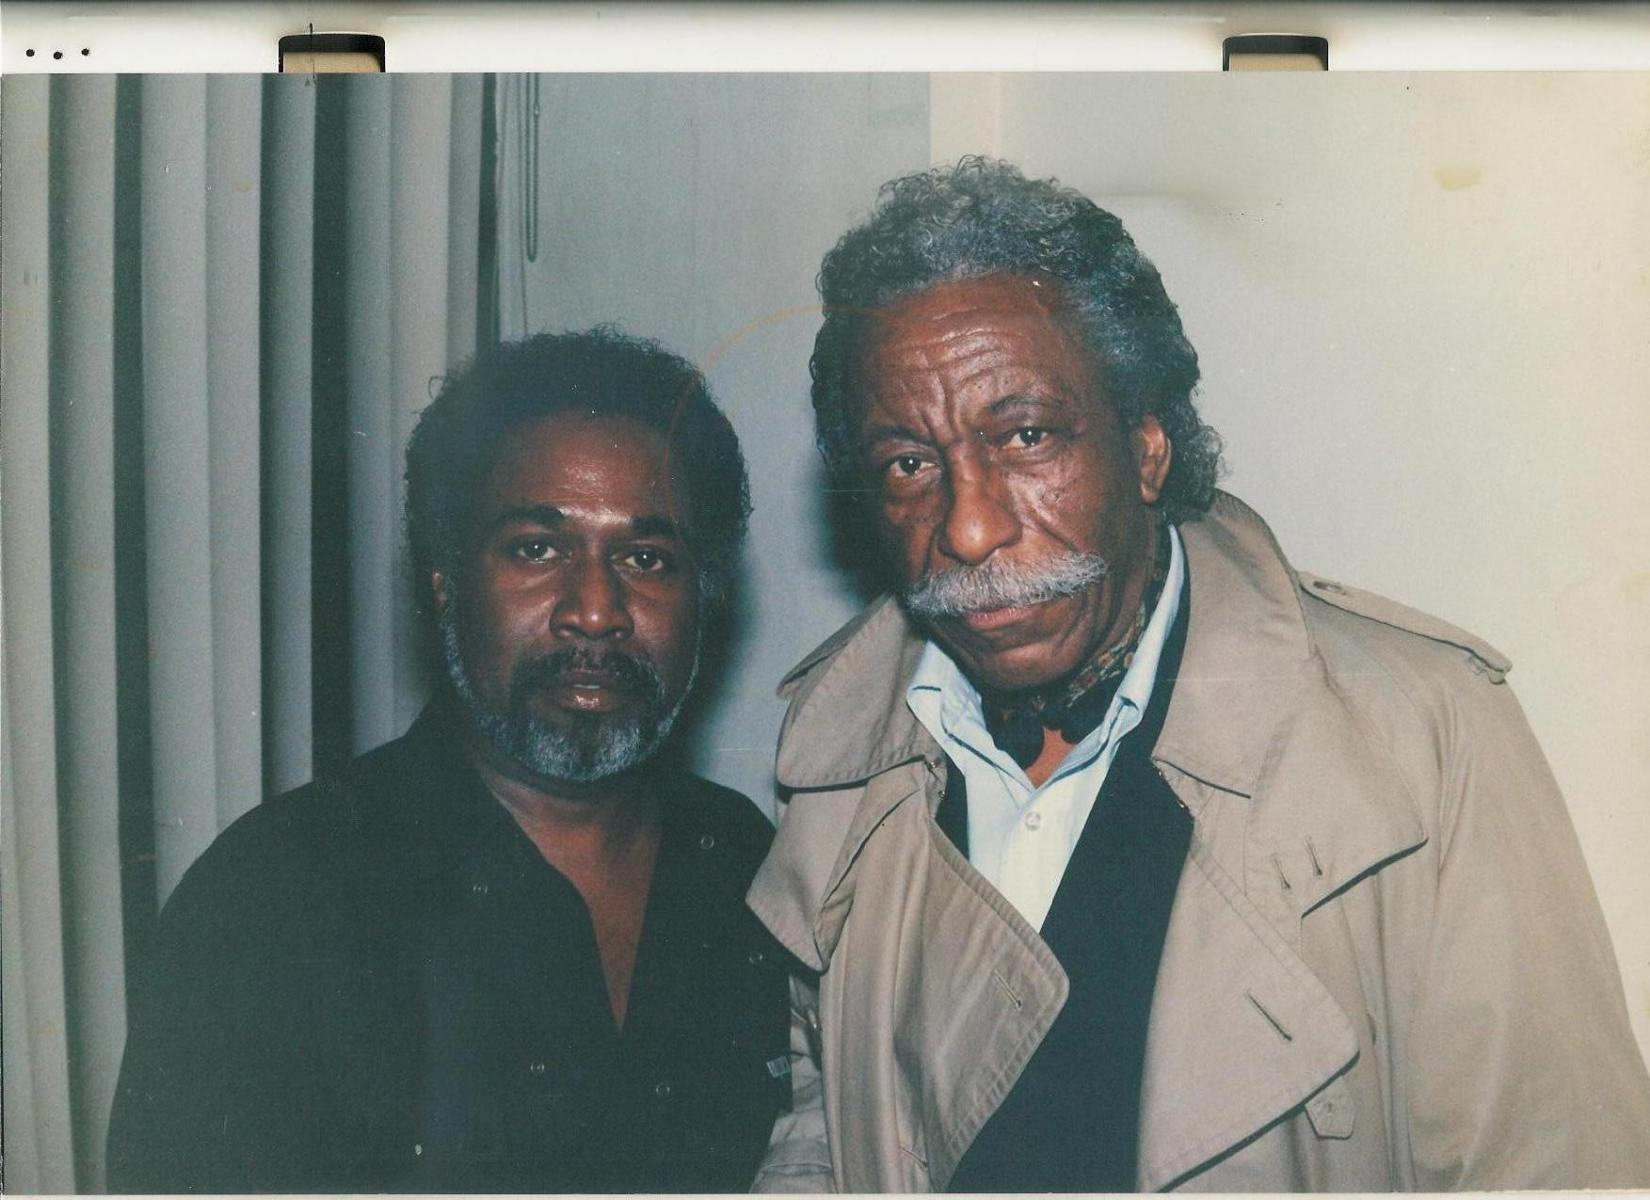 With Gordon Parks